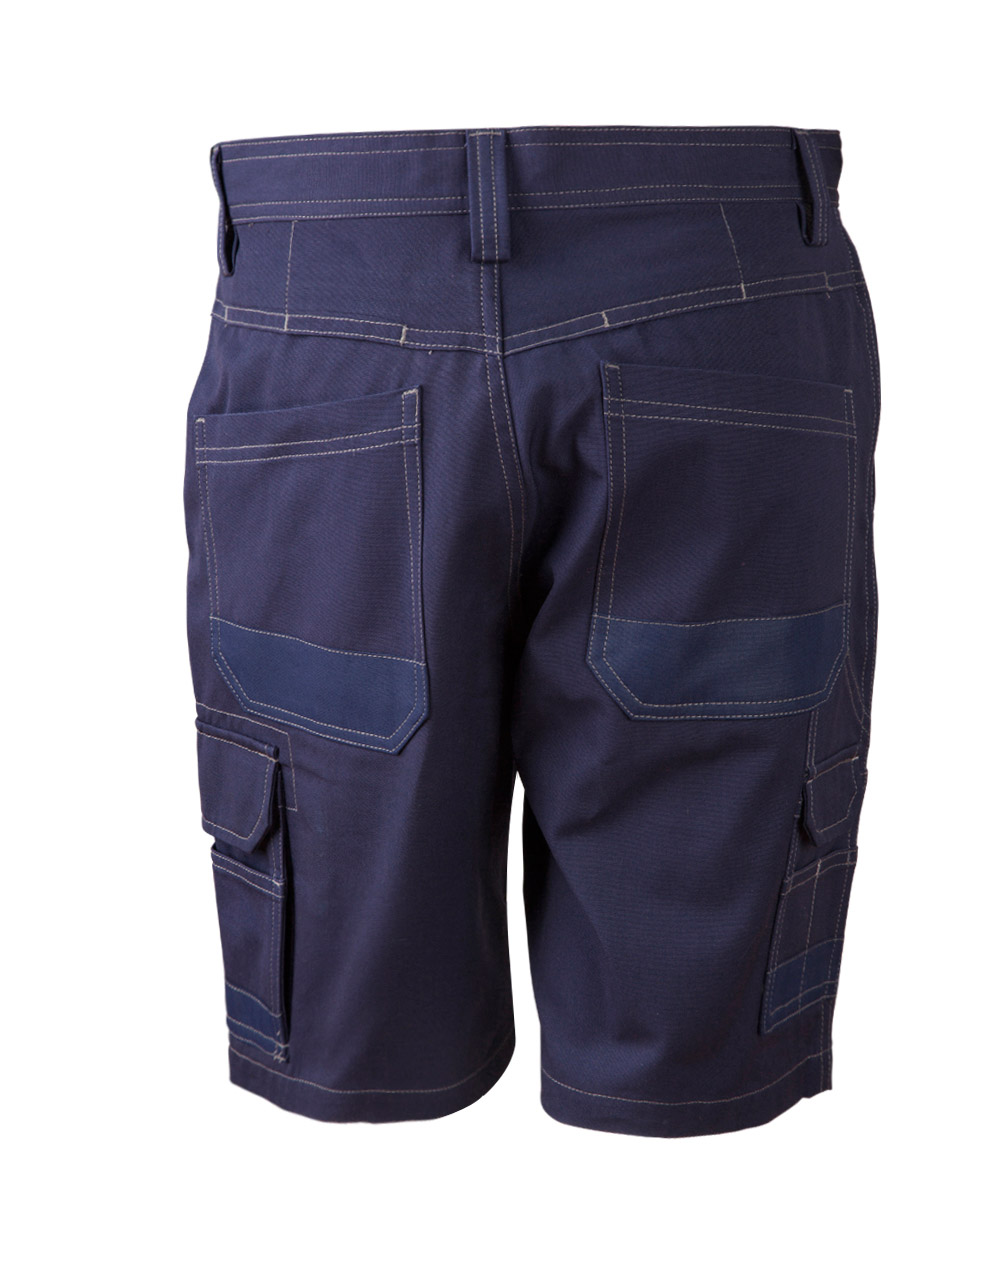 https://s3-ap-southeast-1.amazonaws.com/ws-imgs/WORKWEAR/WP21_Navy_Back.jpg